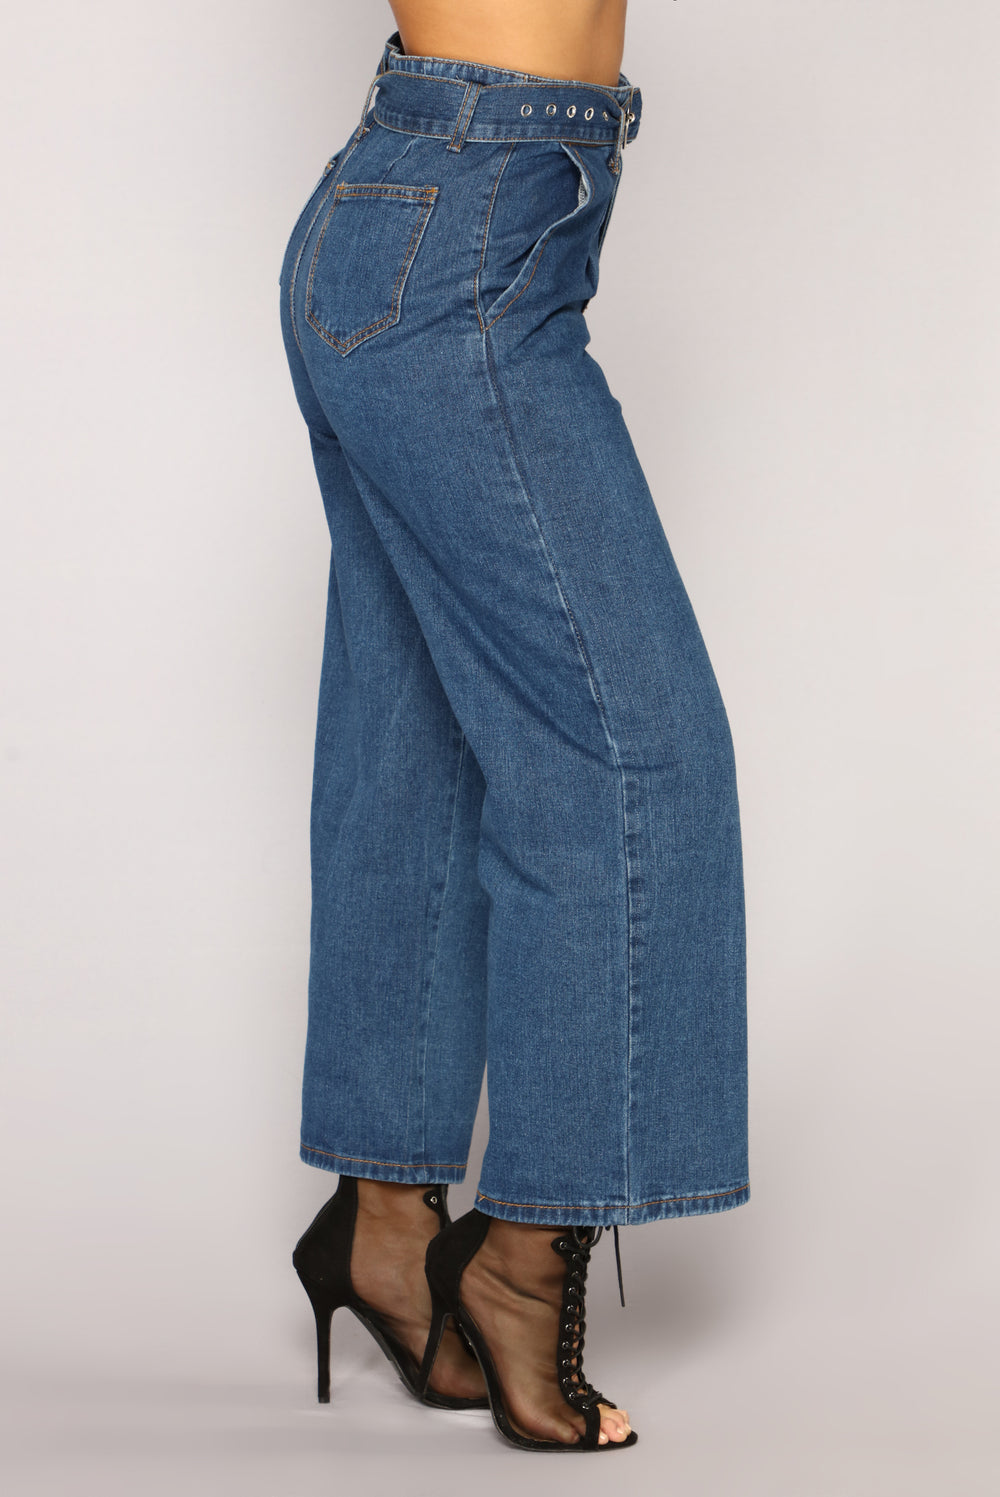 Not A Care Flare Jeans - Dark Blue